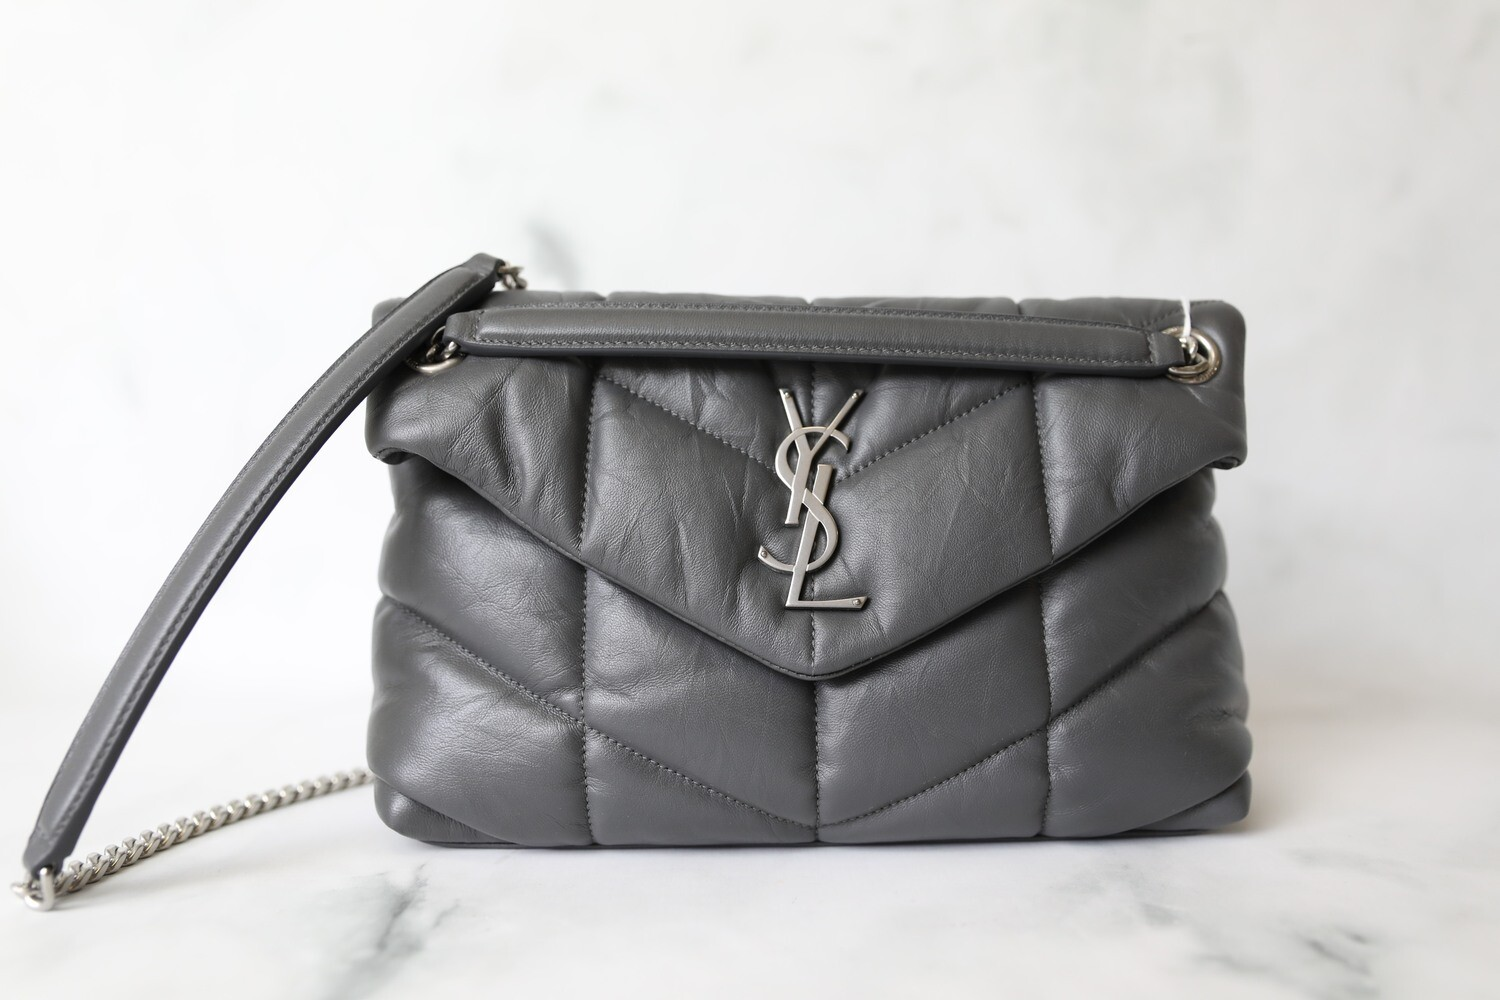 Saint Laurent Lou Lou Puffer Small, Gray with Silver Hardware, Preowned in Dustbag WA001